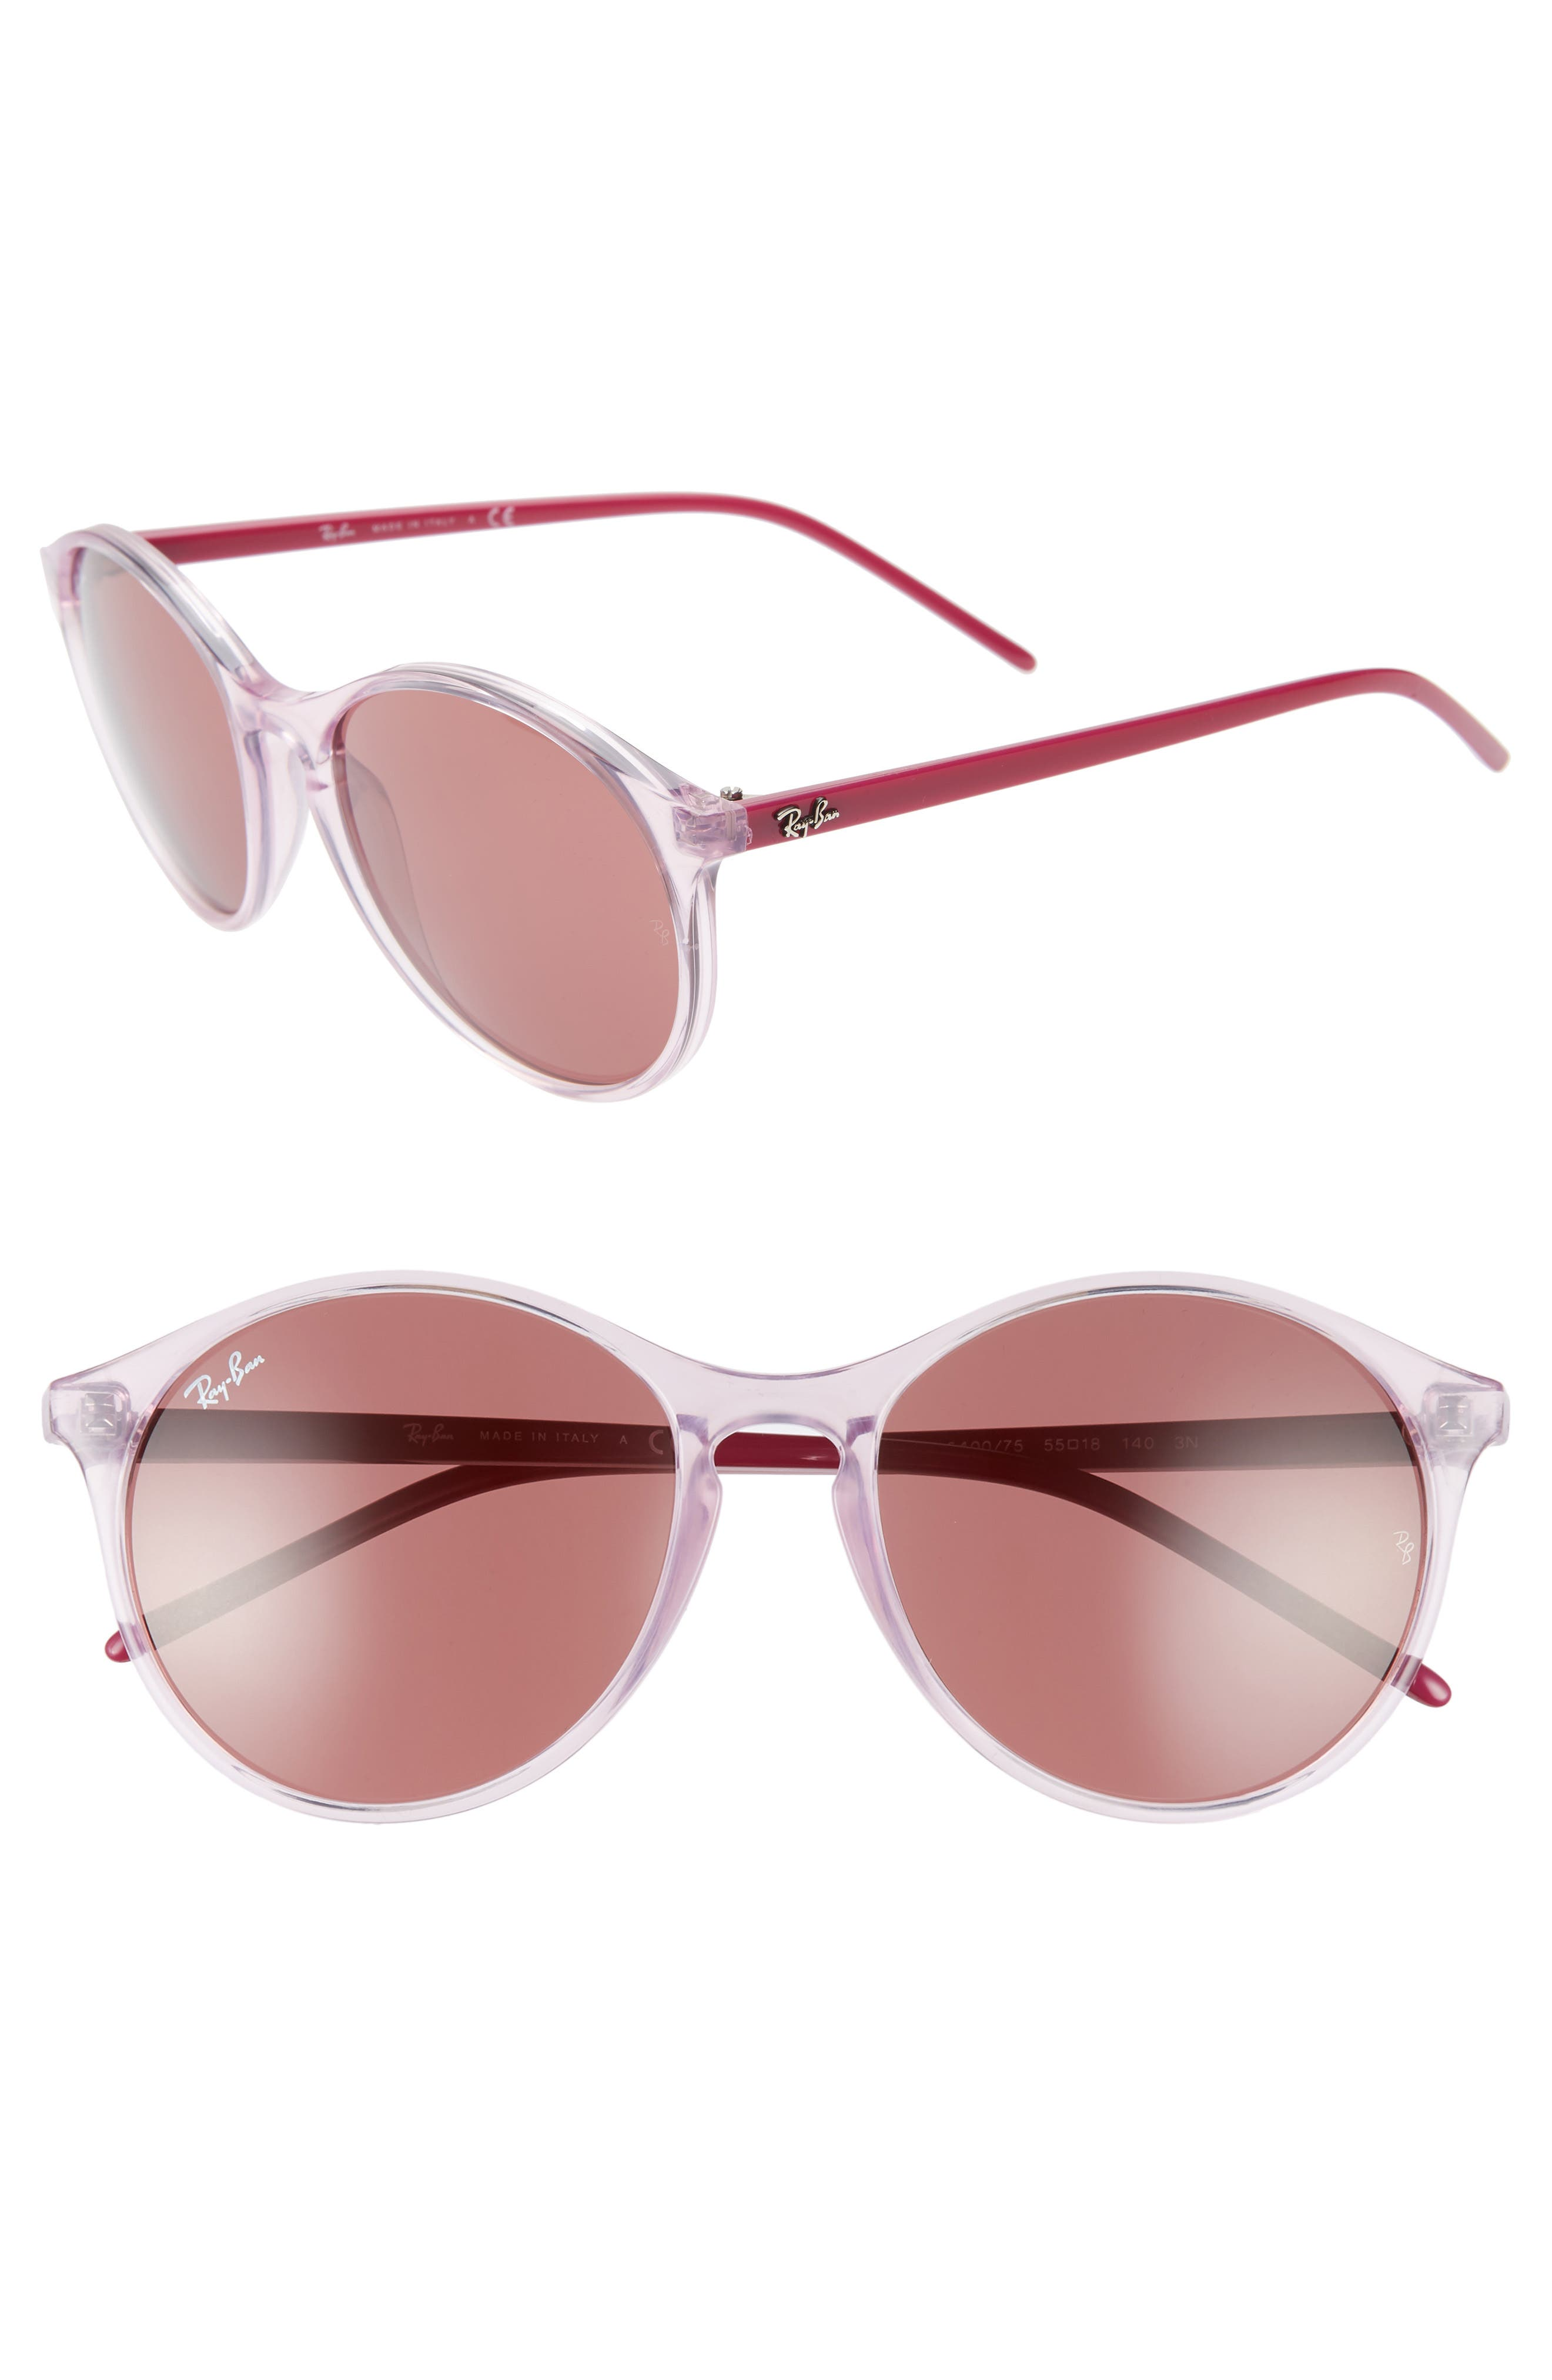 Ray-Ban Highstreet 55Mm Round Sunglasses - Pink/ Bordeaux Solid